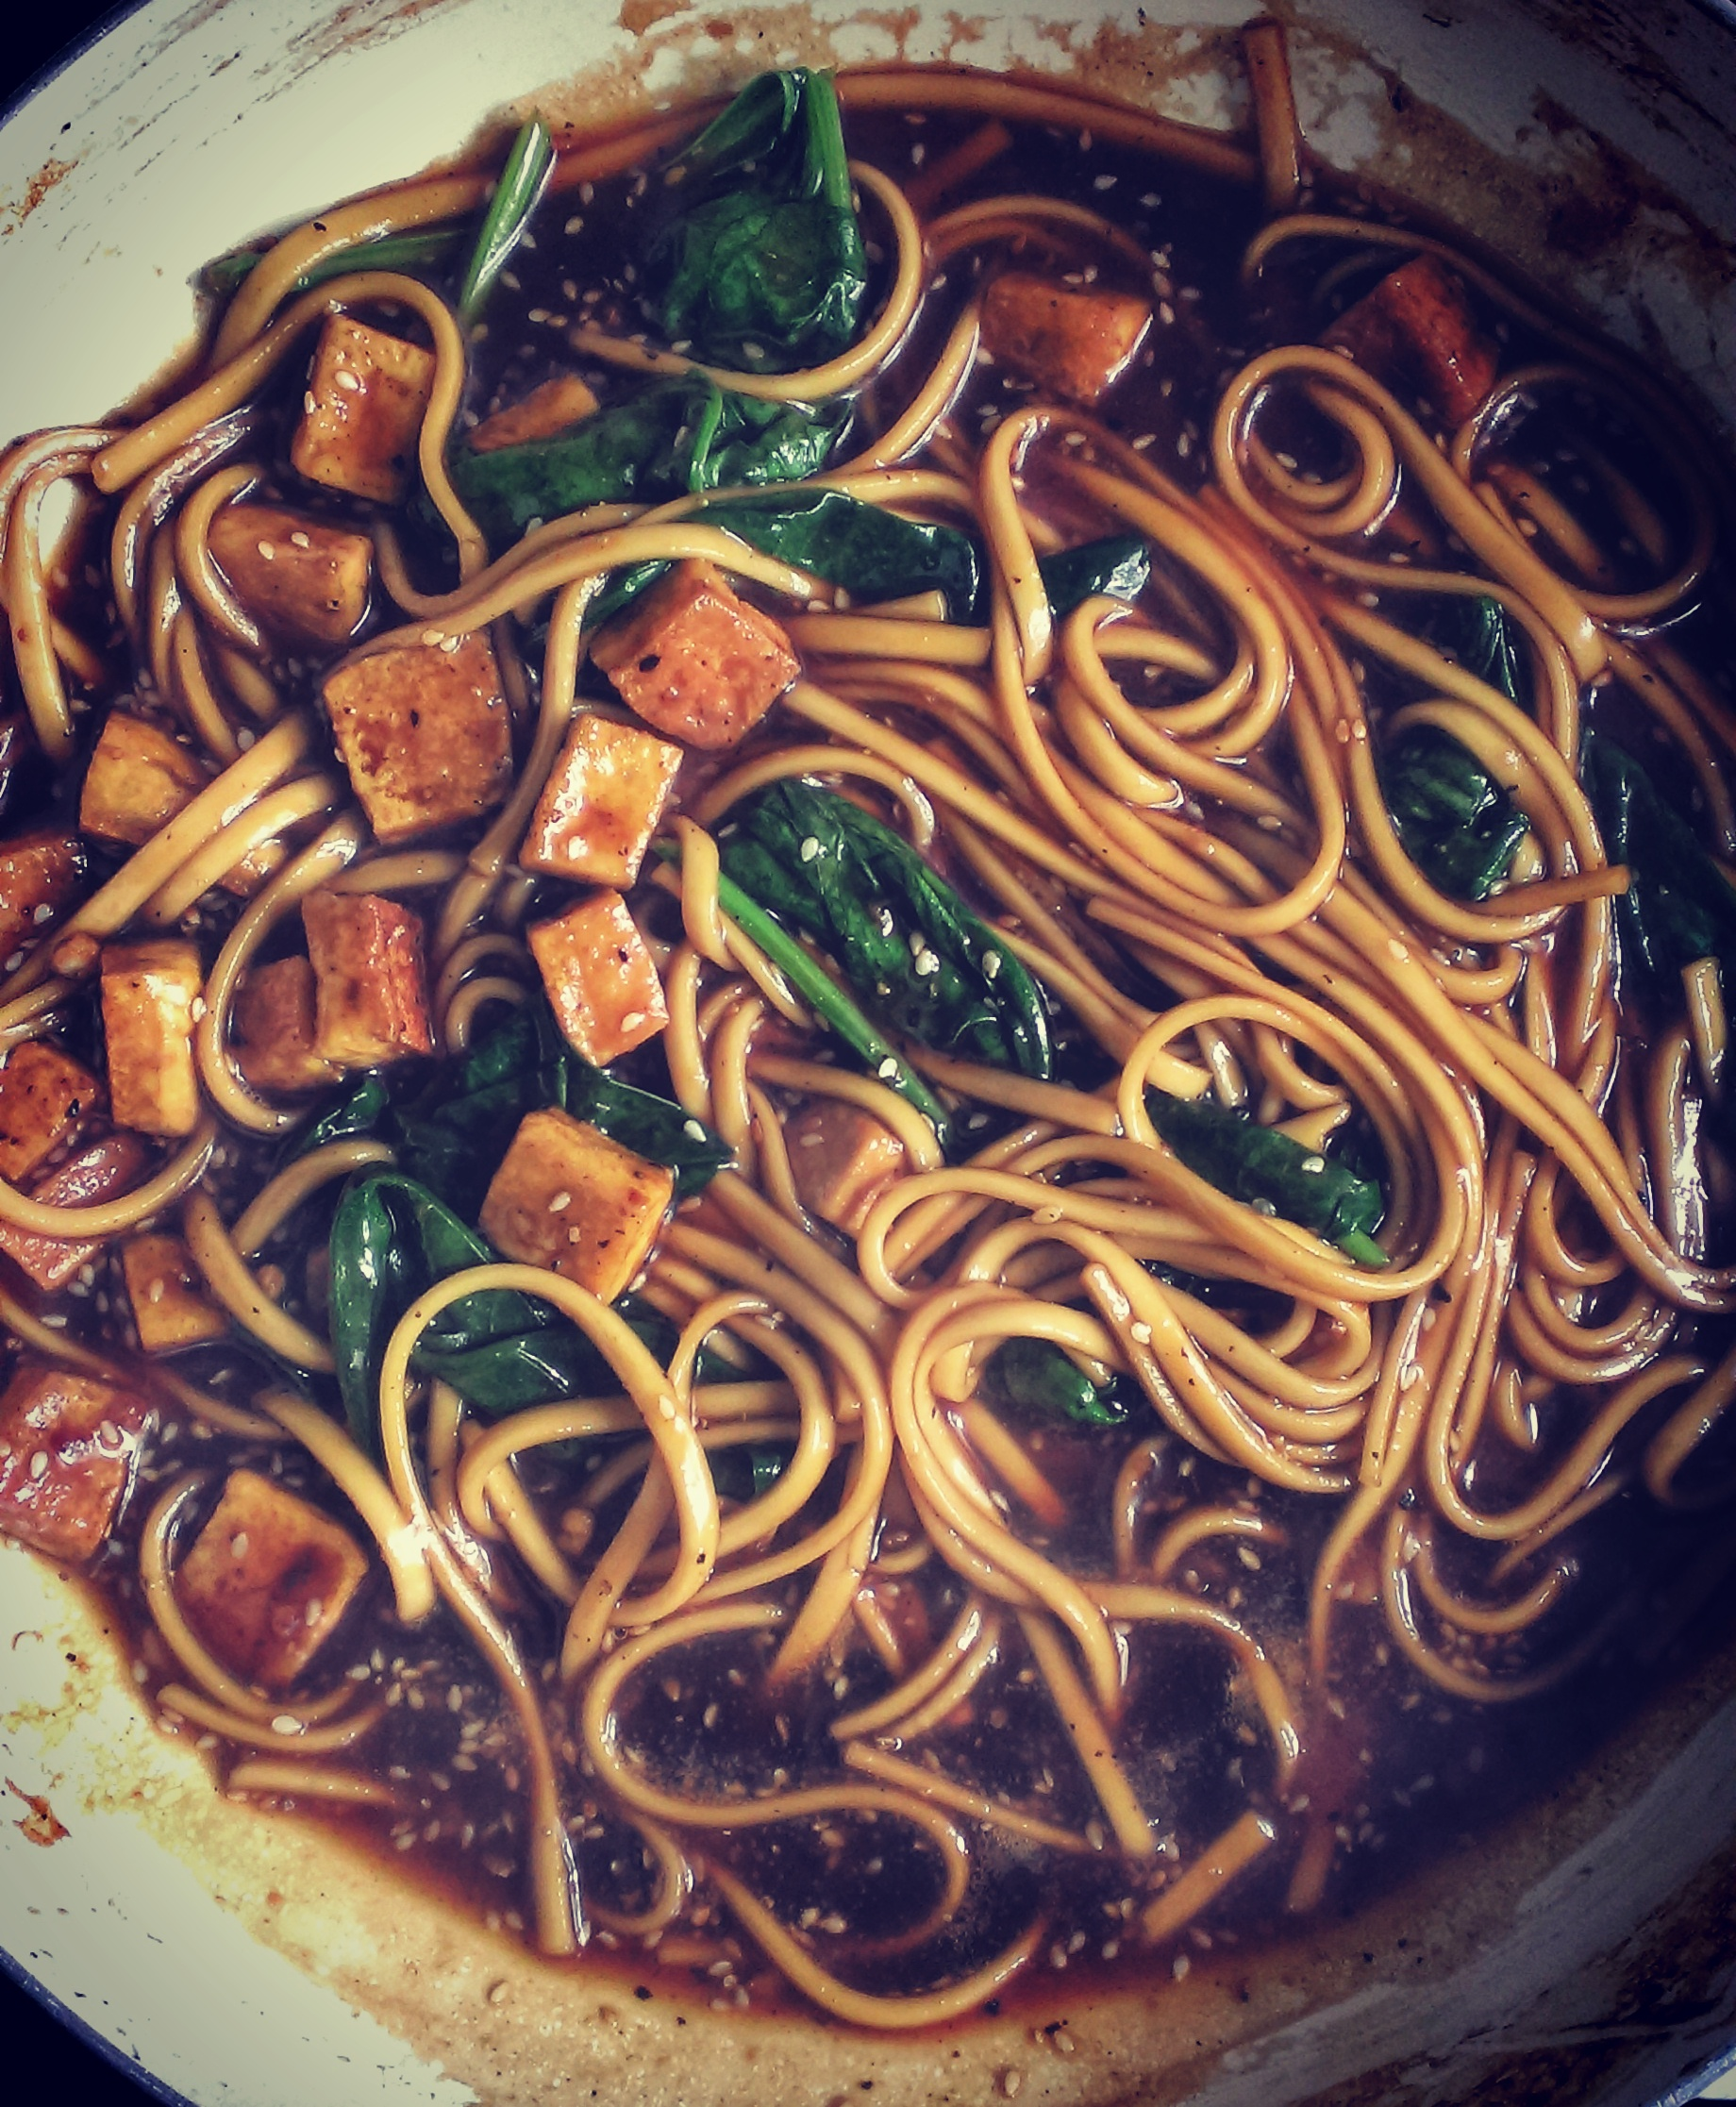 Sesame Tofu with Udon noodles in Honey Black Pepper Sauce